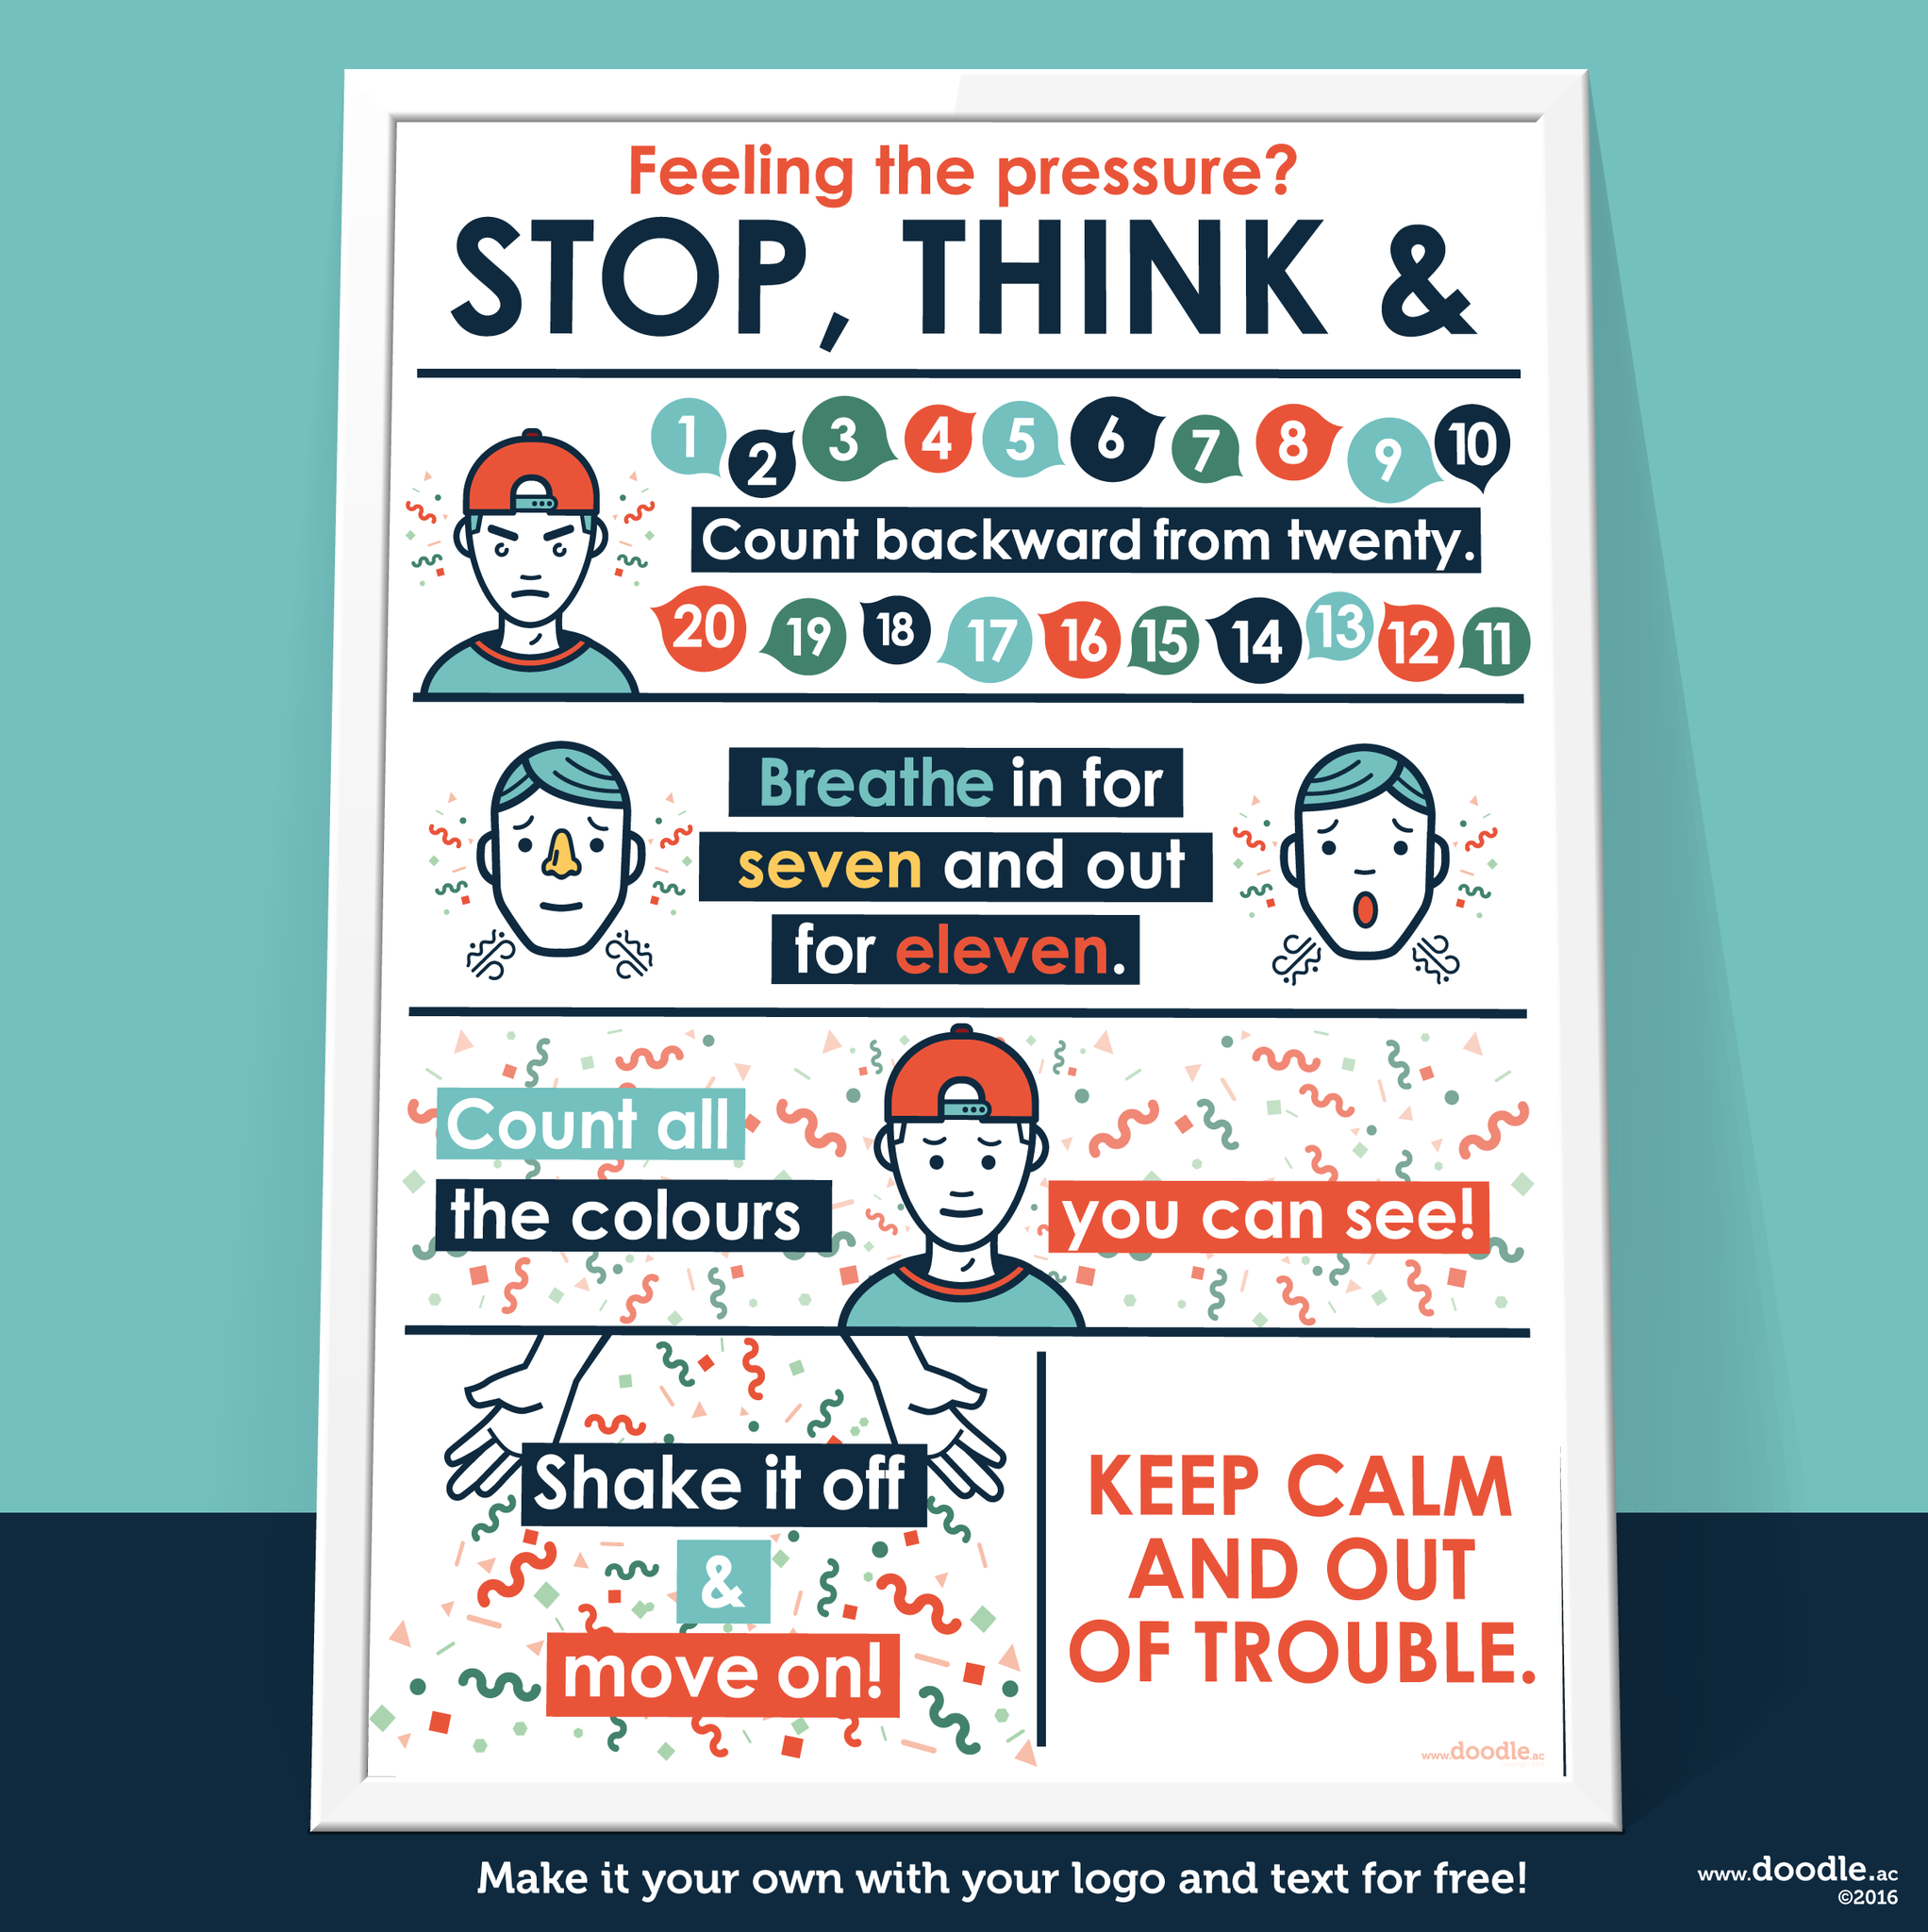 stop, think and poster - doodle education